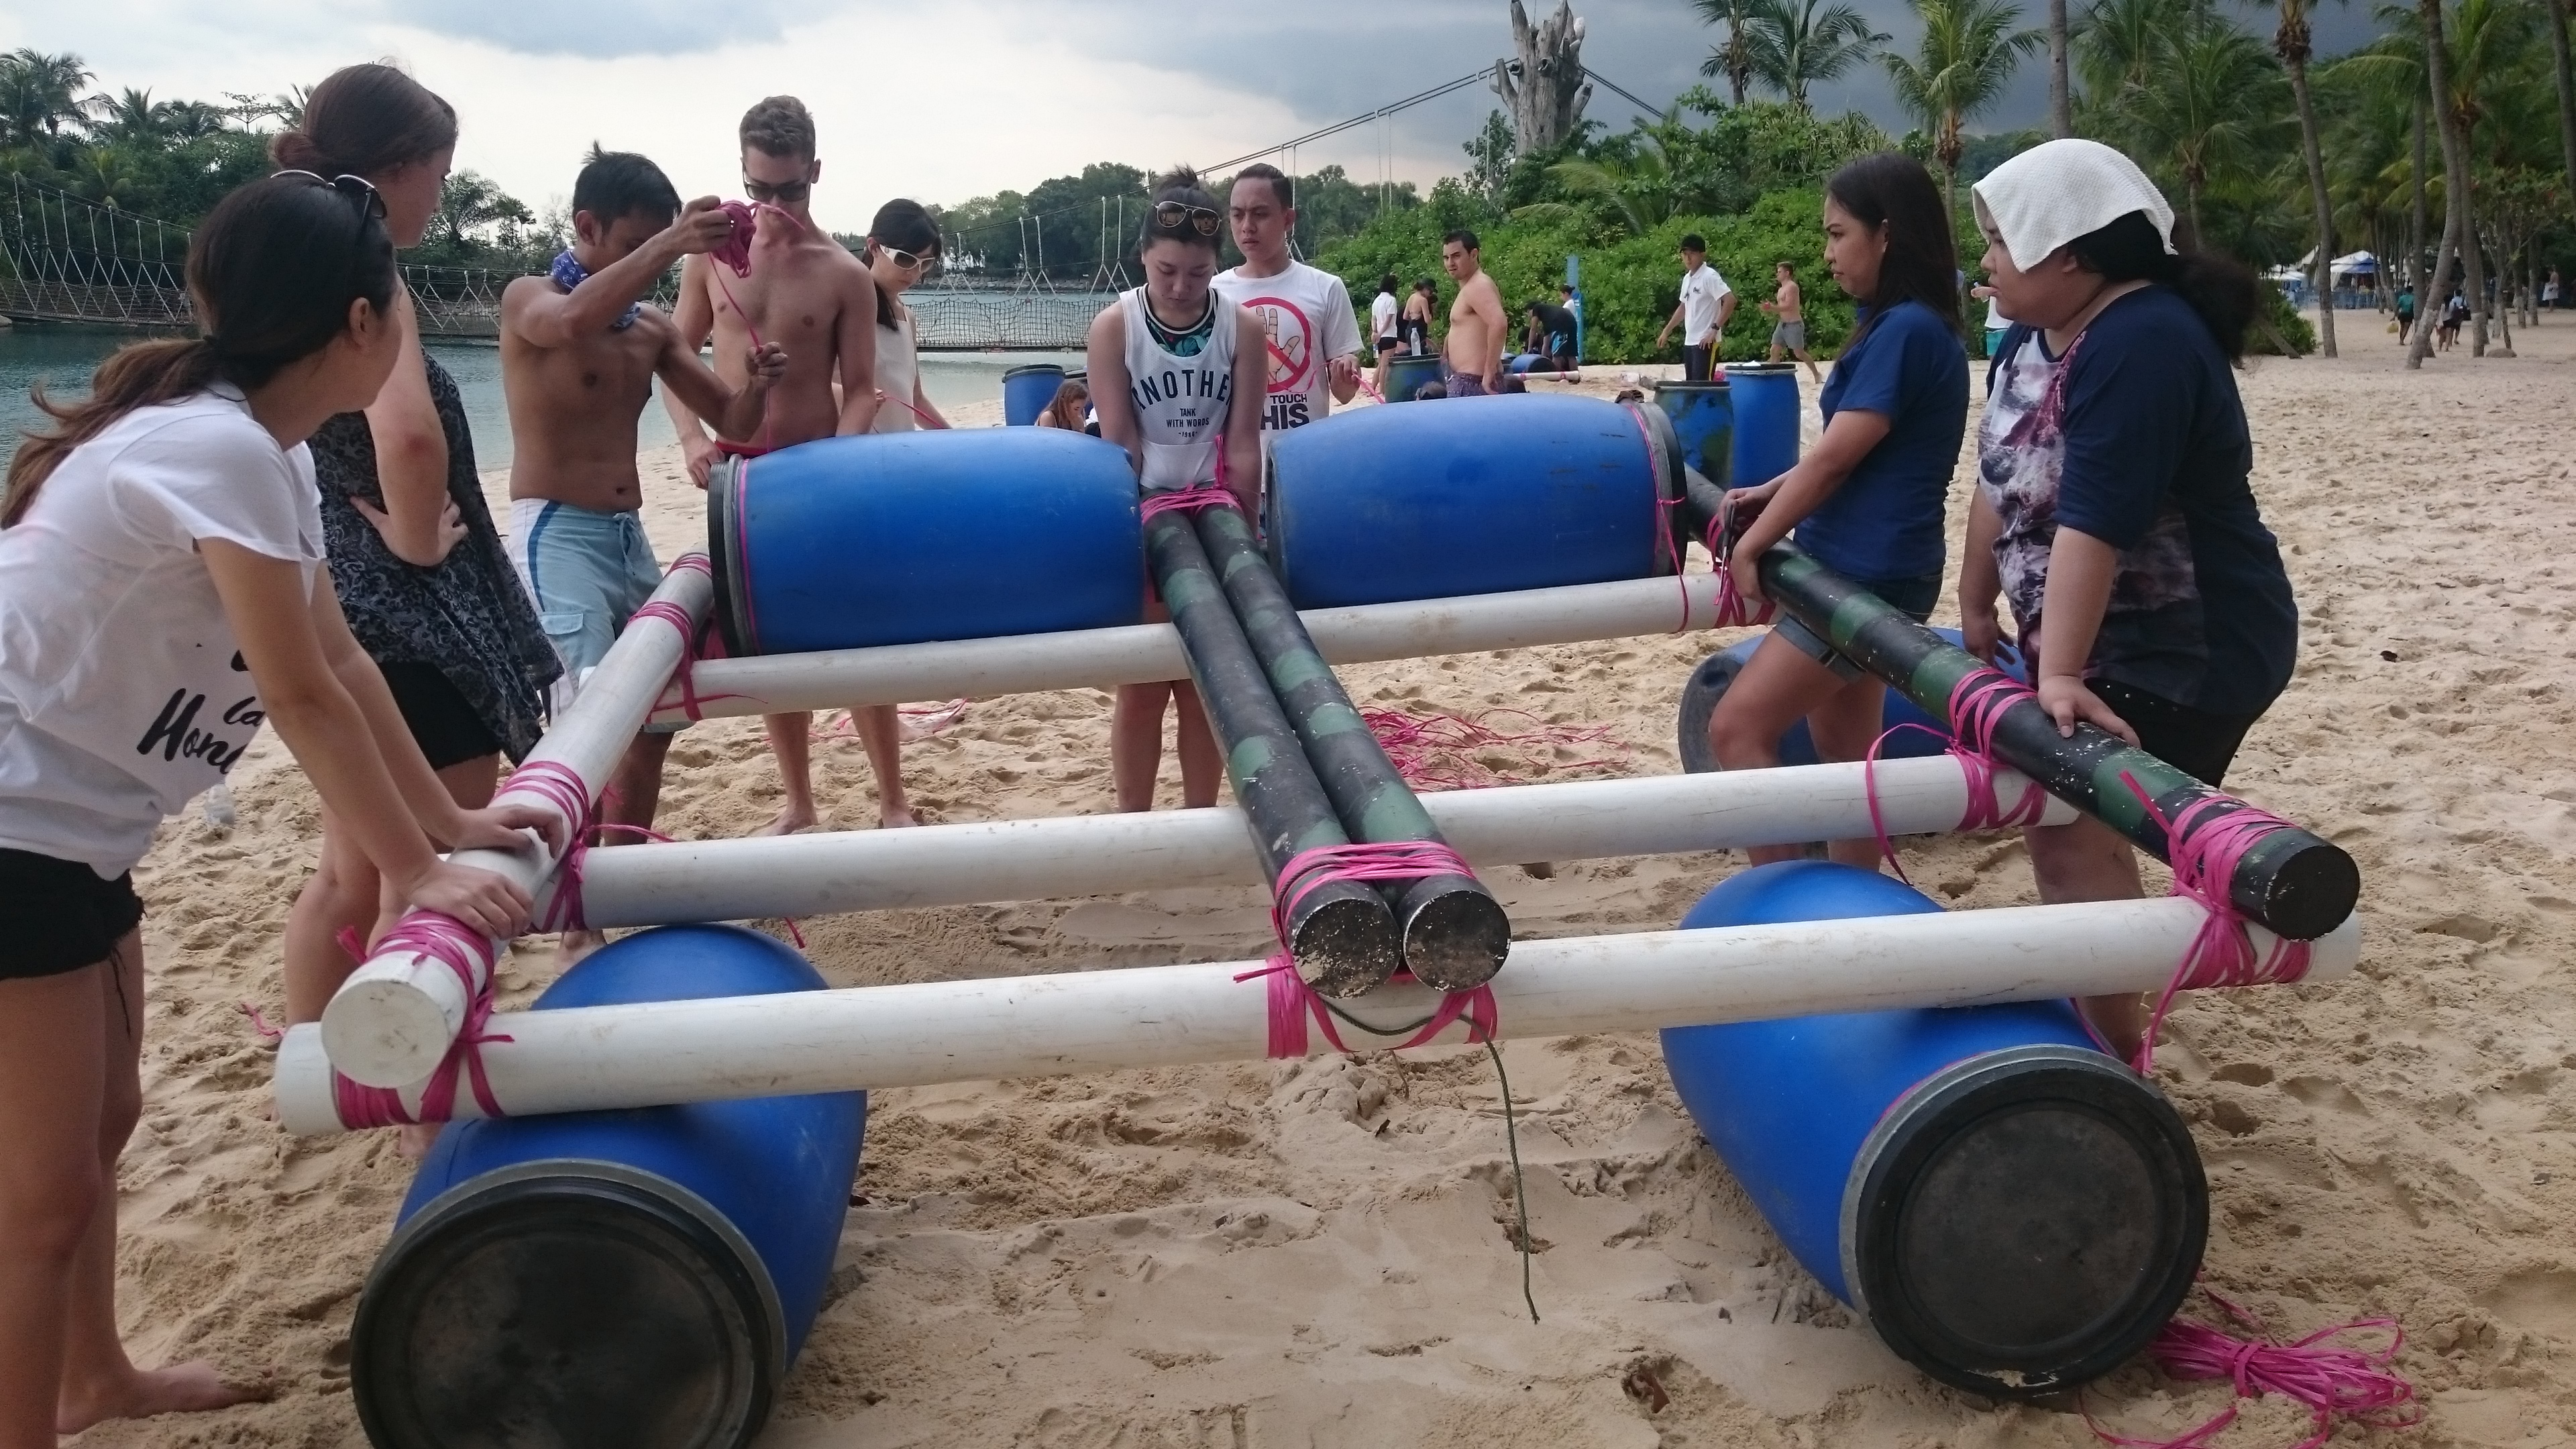 rafting team building activity